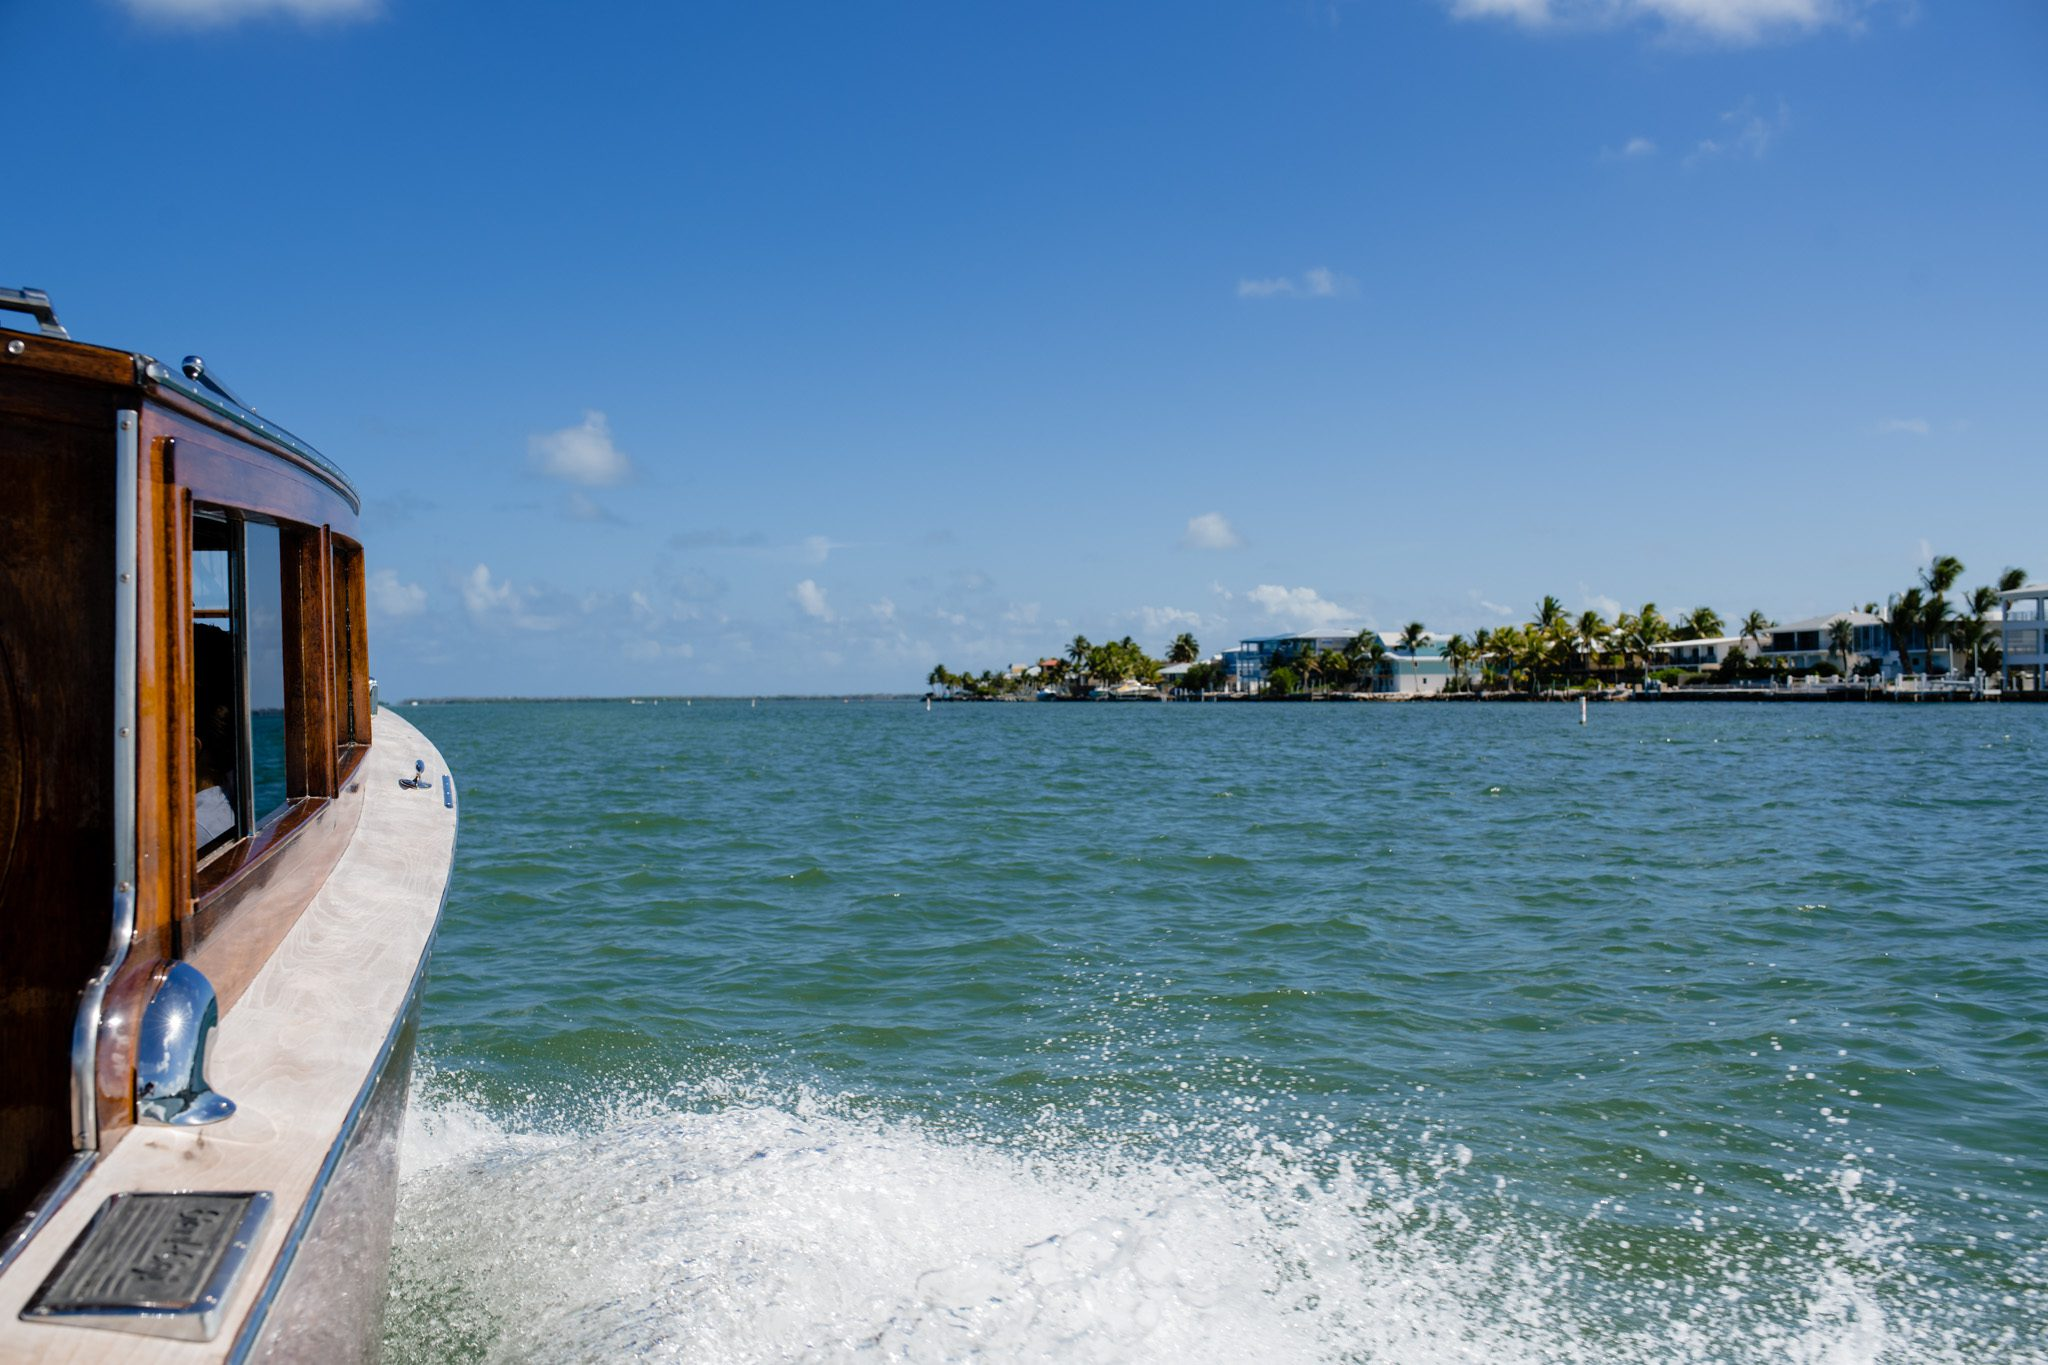 a boat moving through the ocean near palm island in key west